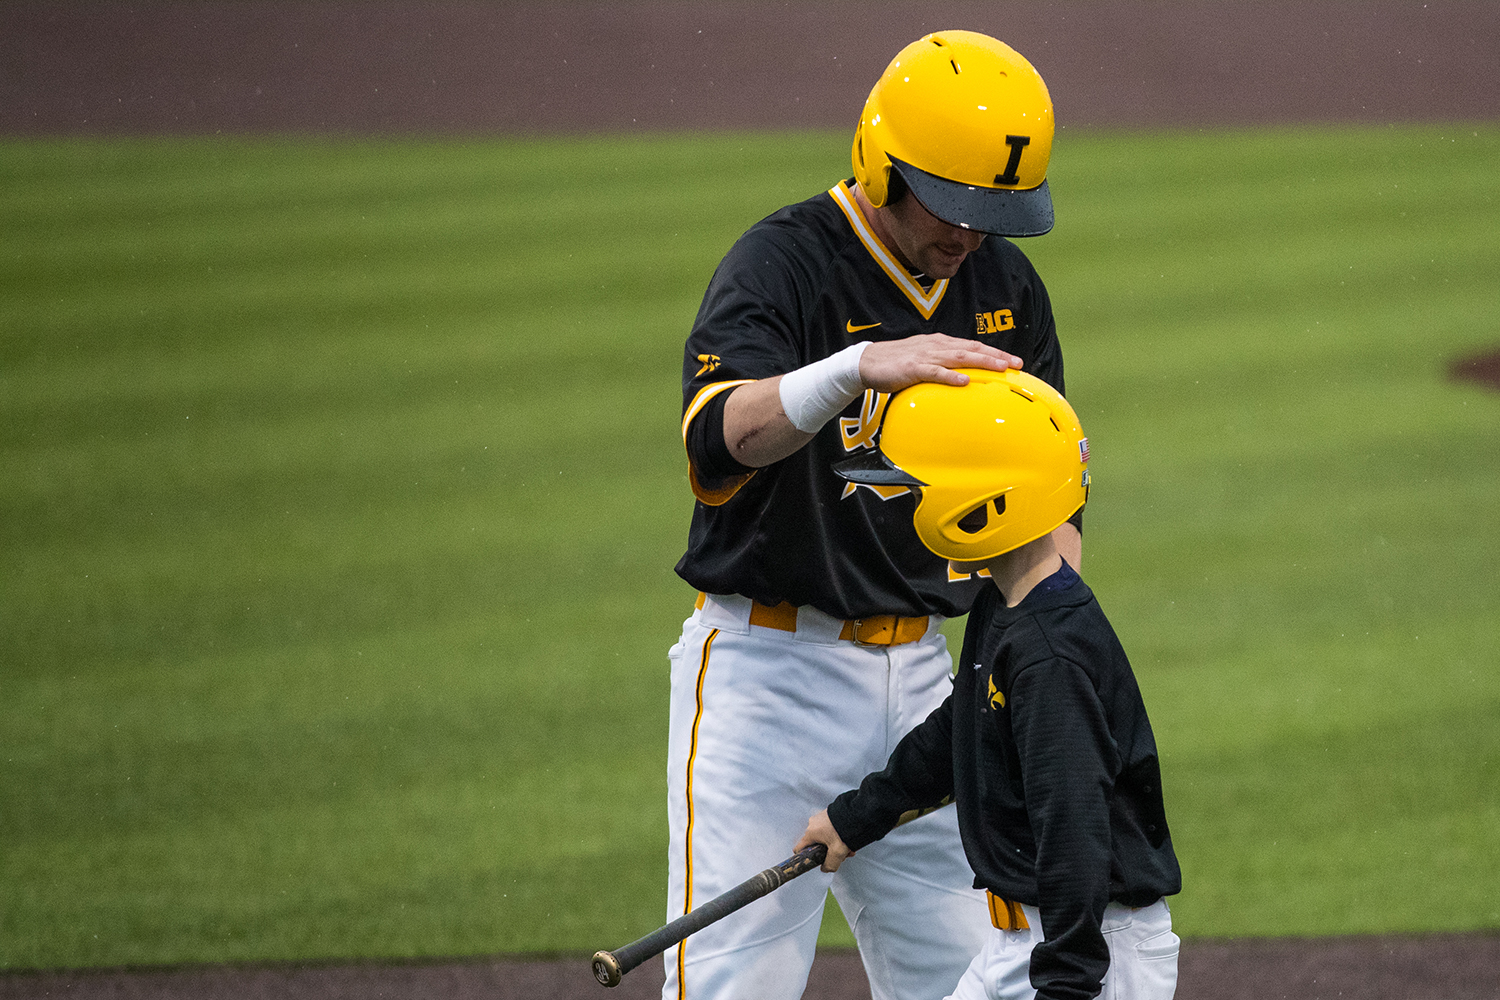 Iowa%27s+Chris+Whelan+pats+the+head+of+the+bat+boy+during+a+baseball+game+against+Illinois+State+on+Wednesday%2C+Apr.+3%2C+2019.+The+Hawkeyes+lost+to+the+Redbirds+11-6.+%28Roman+Slabach%2FThe+Daily+Iowan%29